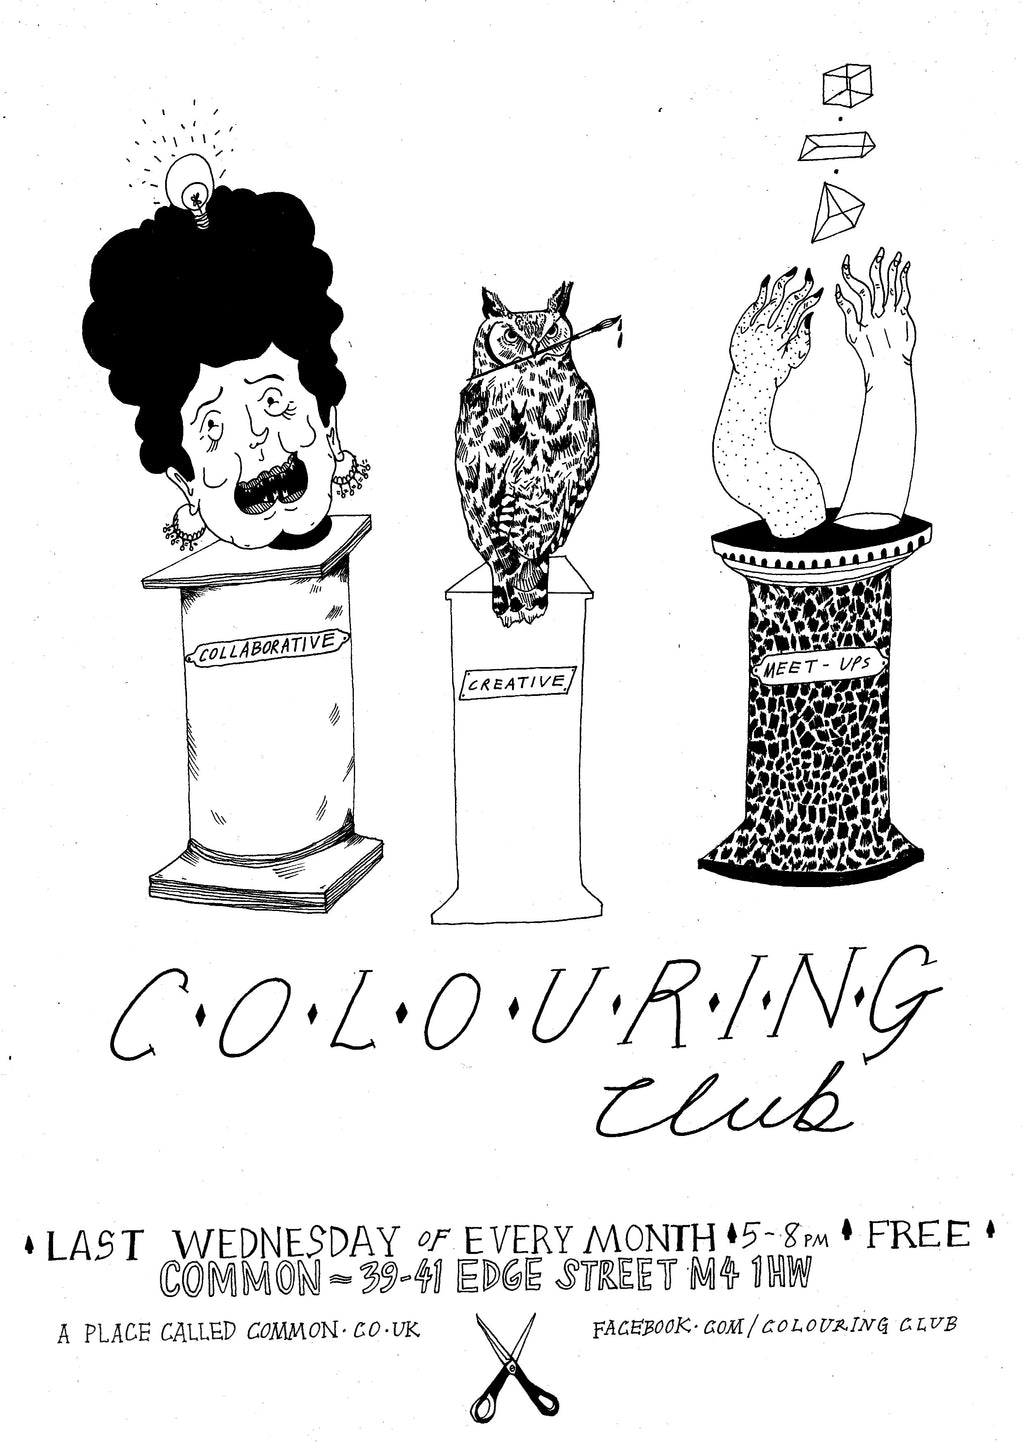 Colouring Club at Common